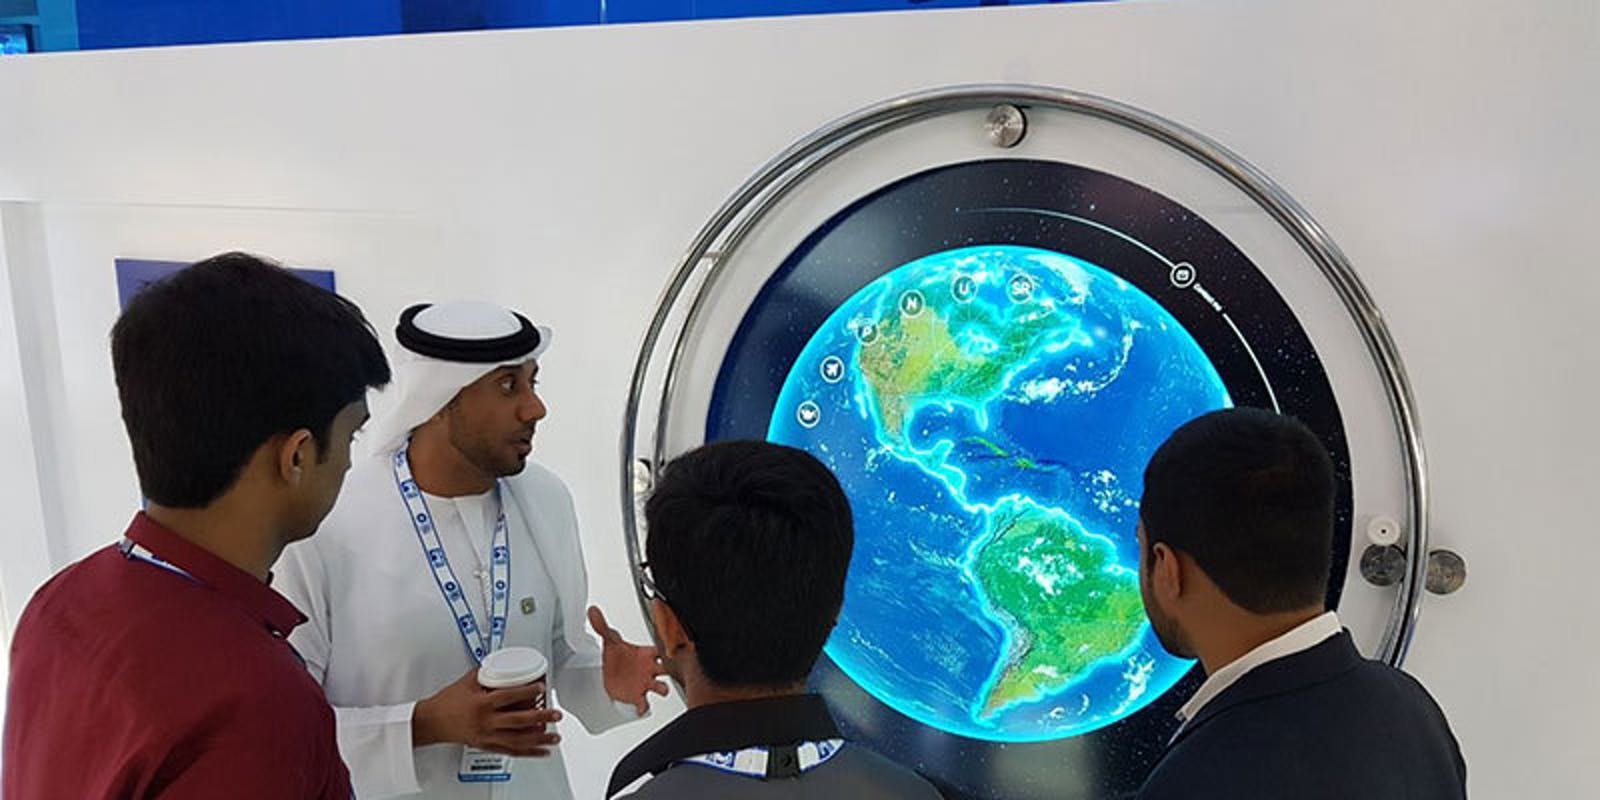 Adnoc at ADIPEC 2017